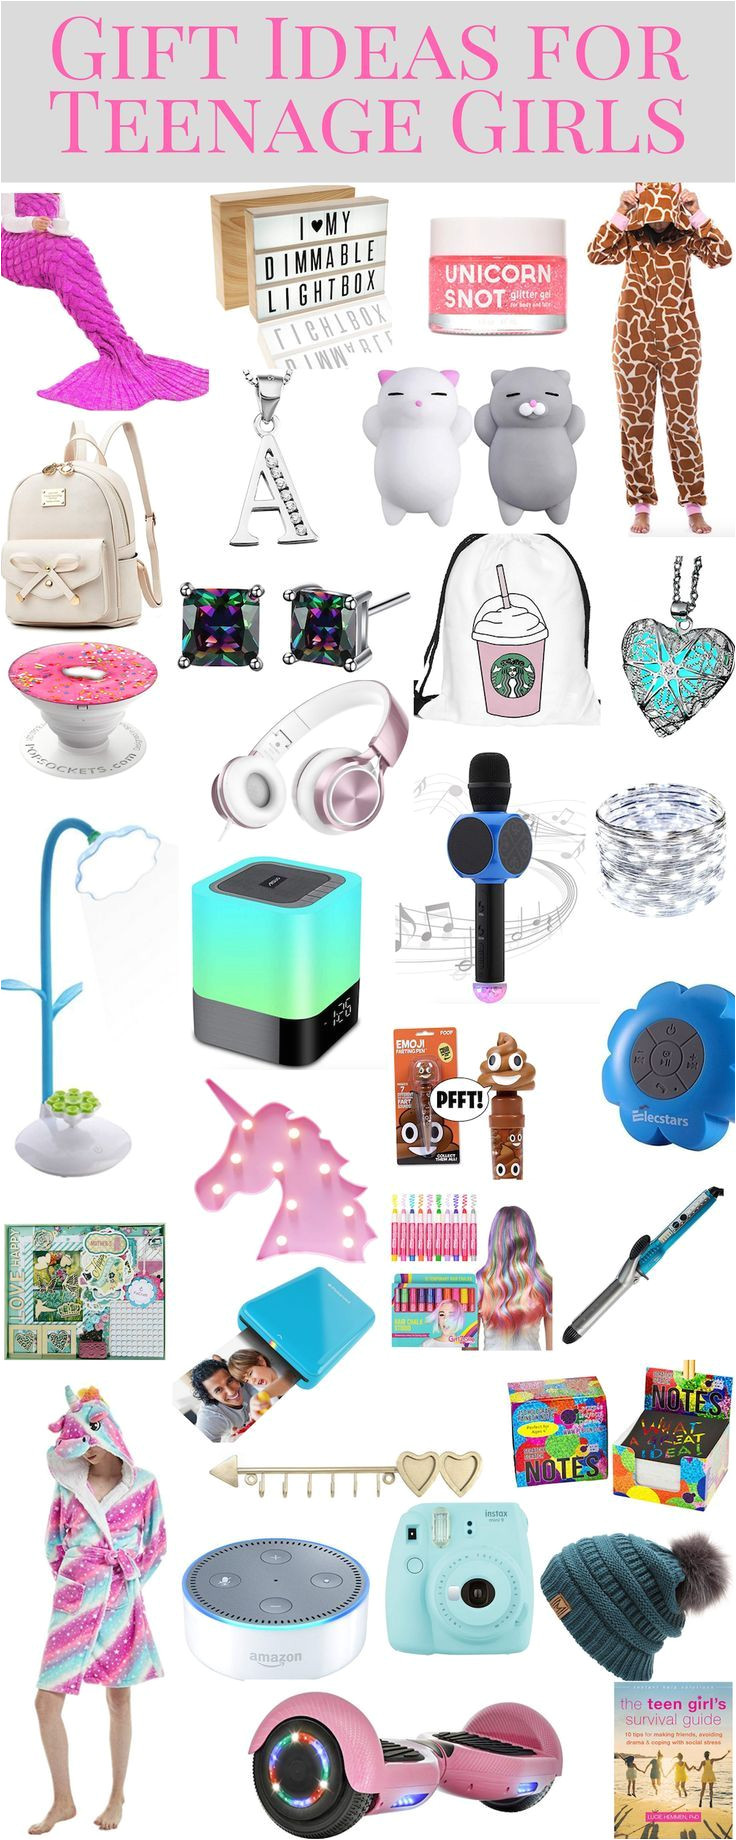 Christmas Gift Ideas for Teenage Girl Pinterest Gift Ideas for Tween and Teen Girls Christmas Pinterest Gifts